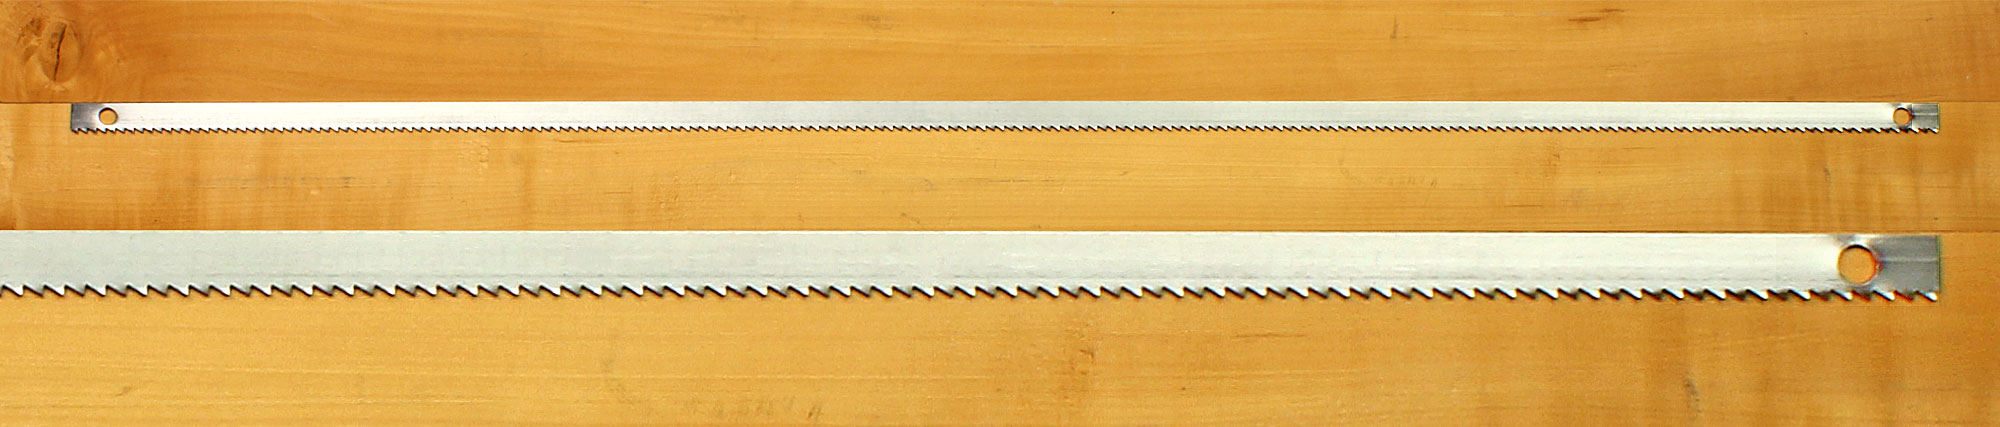 Frame saws bow saws turning saws fine tools ece turning bow saw blade greentooth Gallery